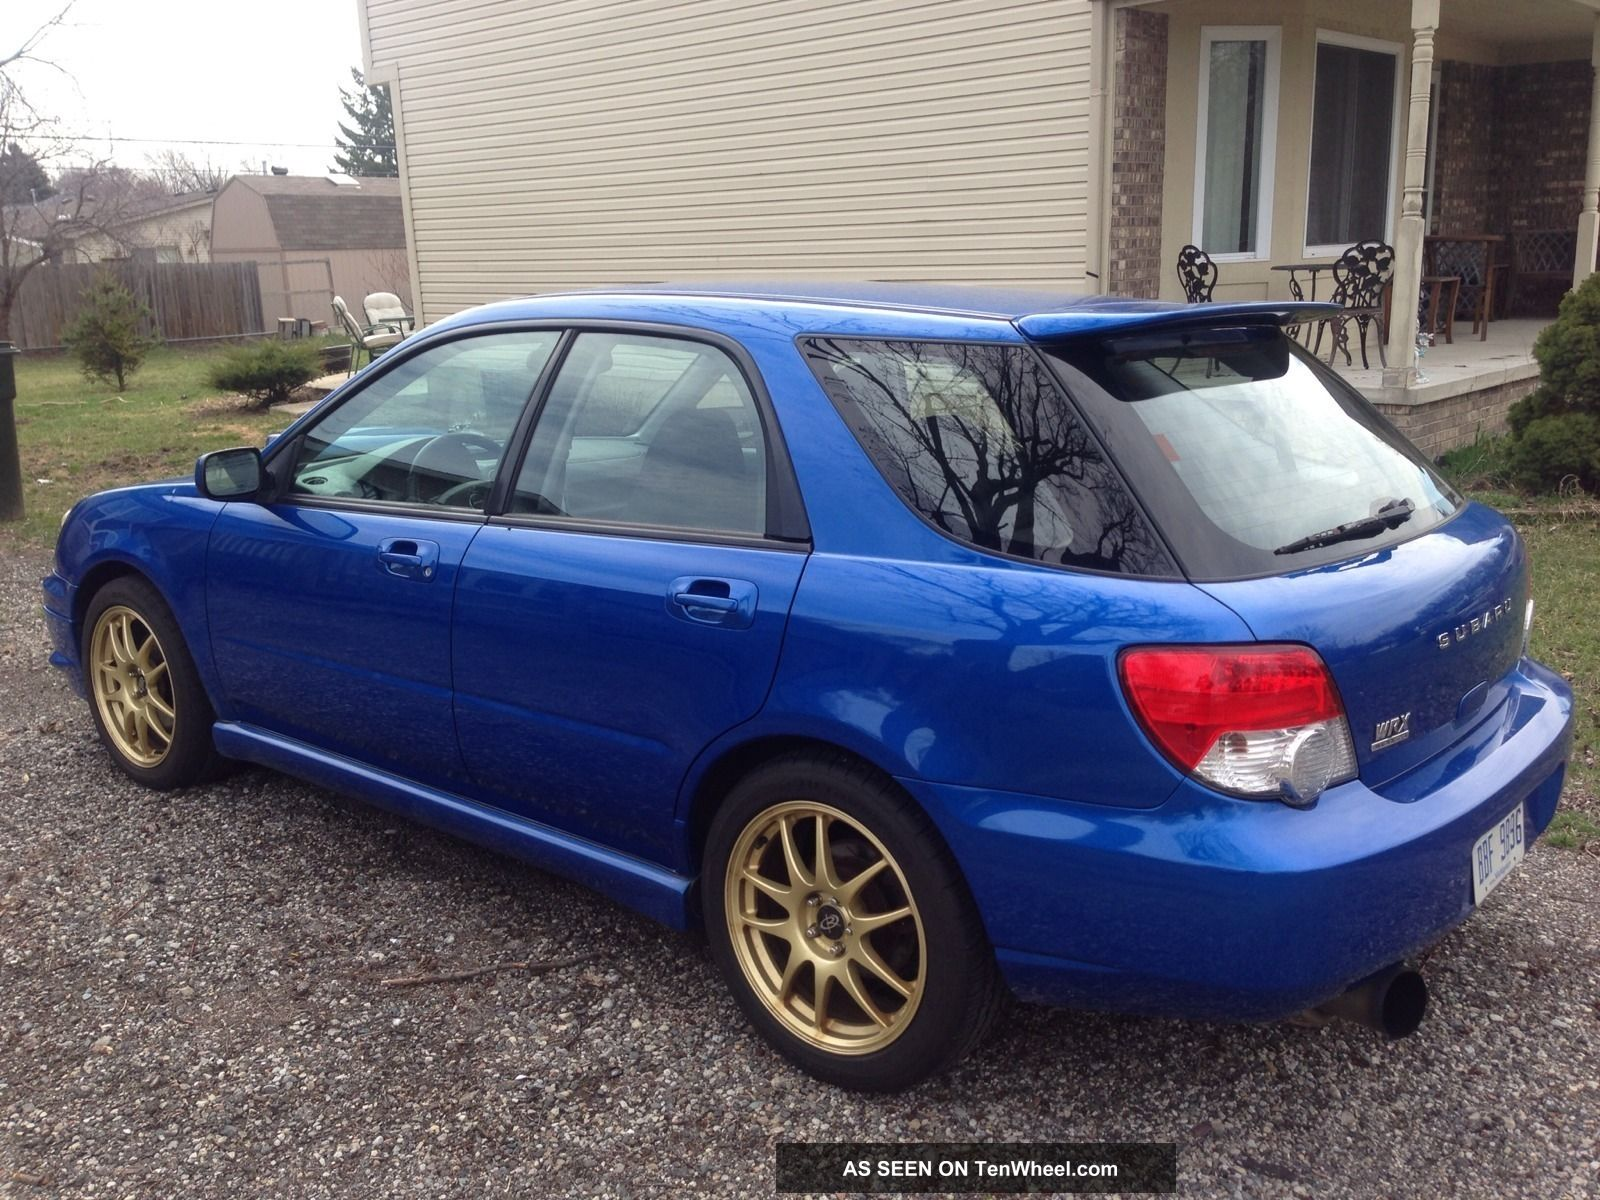 2004 subaru impreza wrx blue wagon this ones name was bubbles my 2004 subaru impreza wrx blue wagon this ones name was bubbles my daughter named it after apower puff girl i put a stage 2 cobb package on her vanachro Images